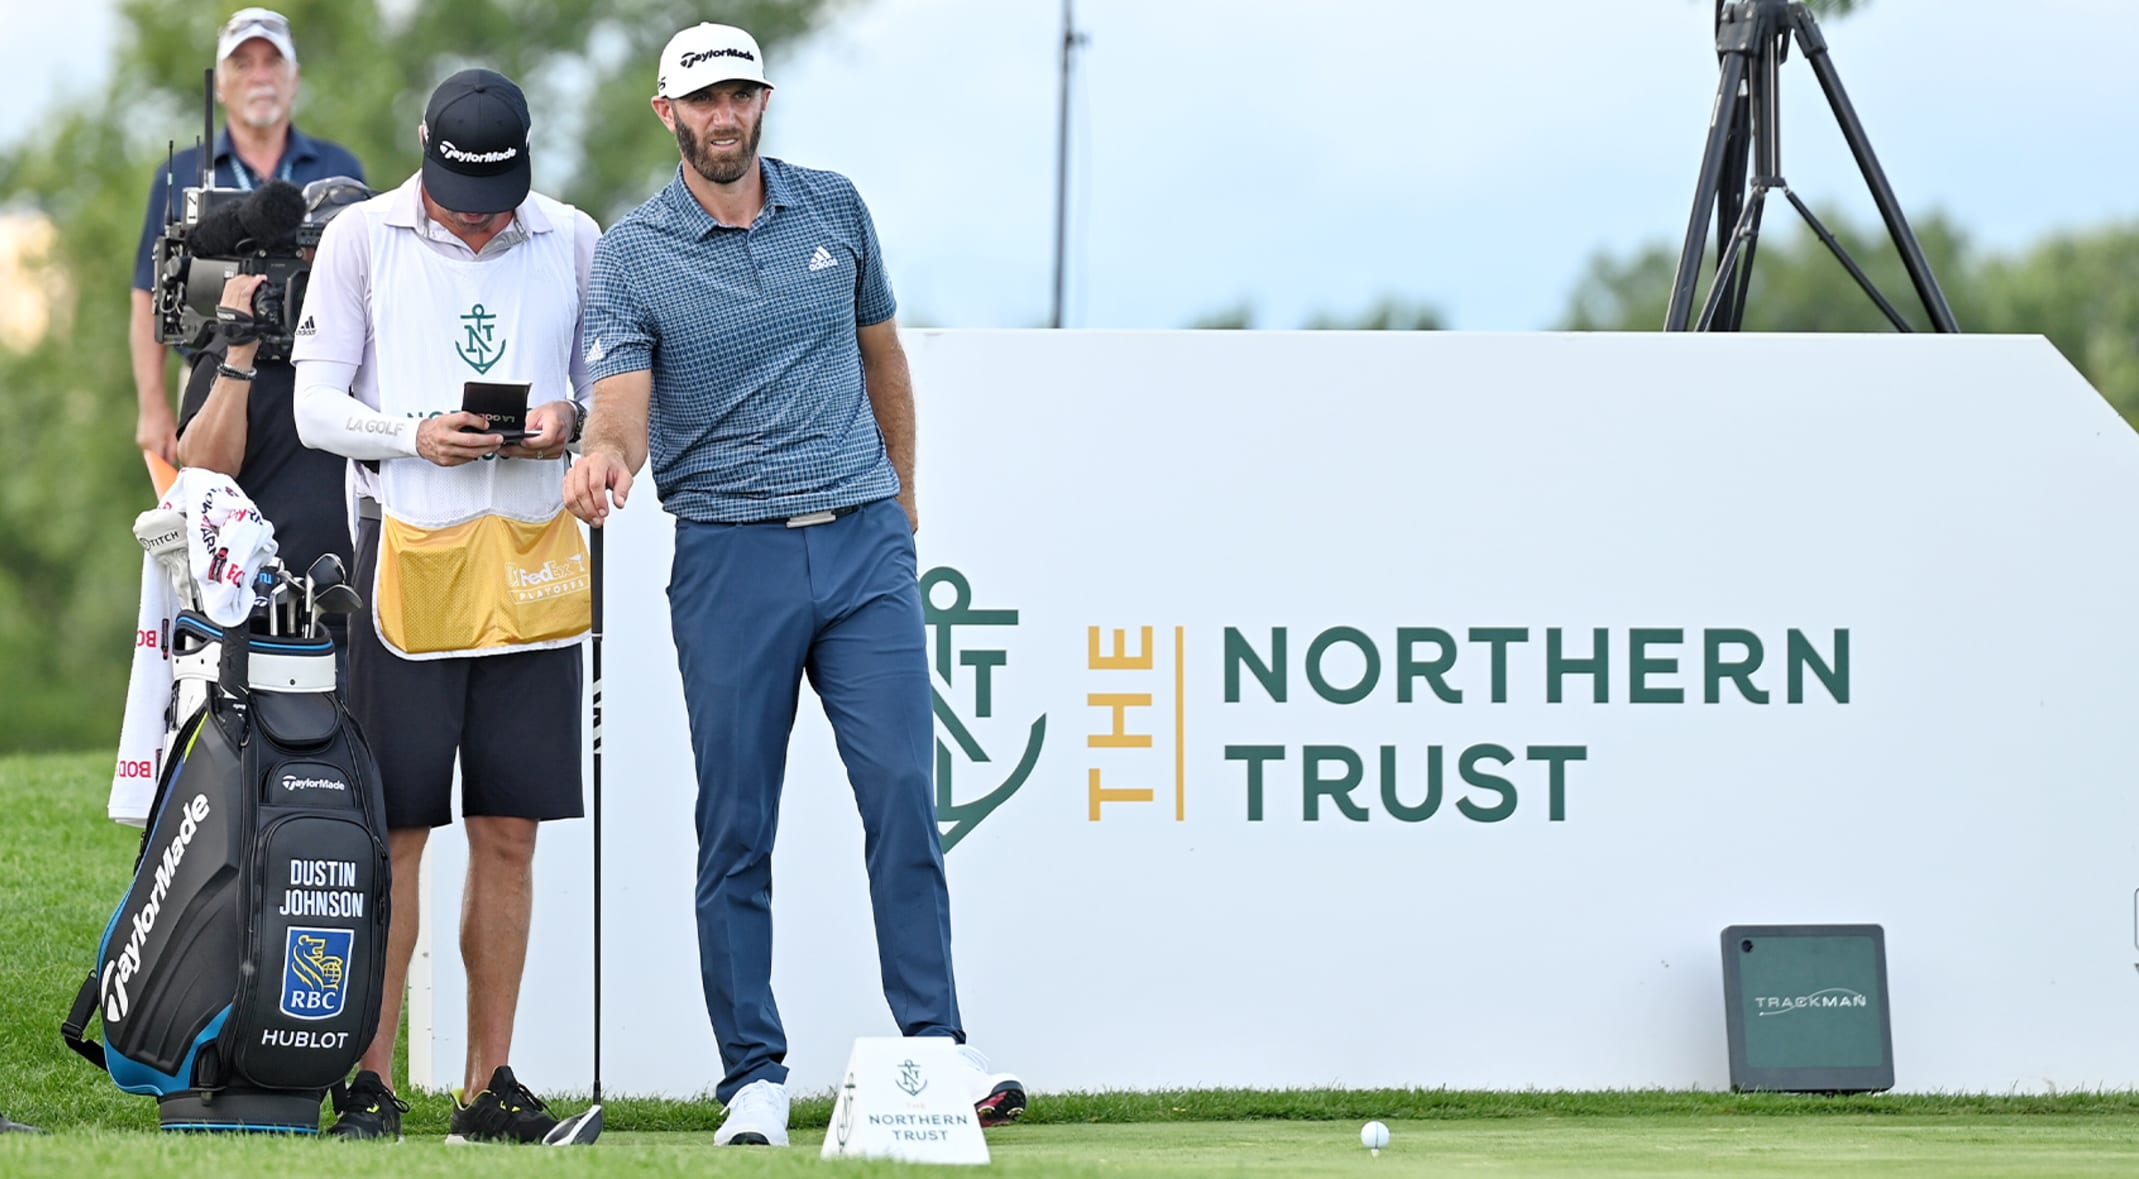 Dustin Johnson shoots 70 without a driver in the bag